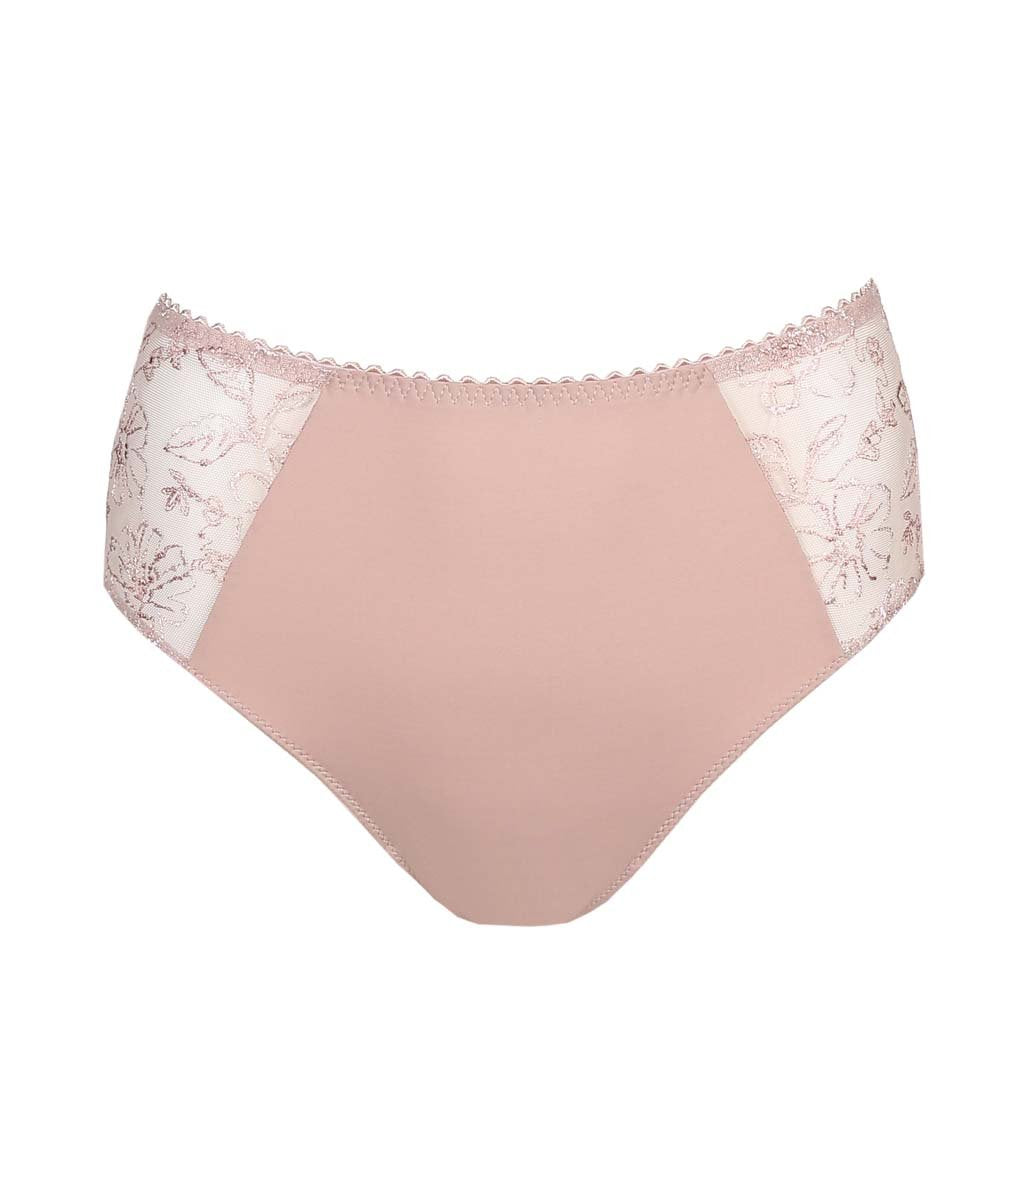 PrimaDonna 'Alara' (Patine) Full Brief - Sandra Dee - Product Shot - Front